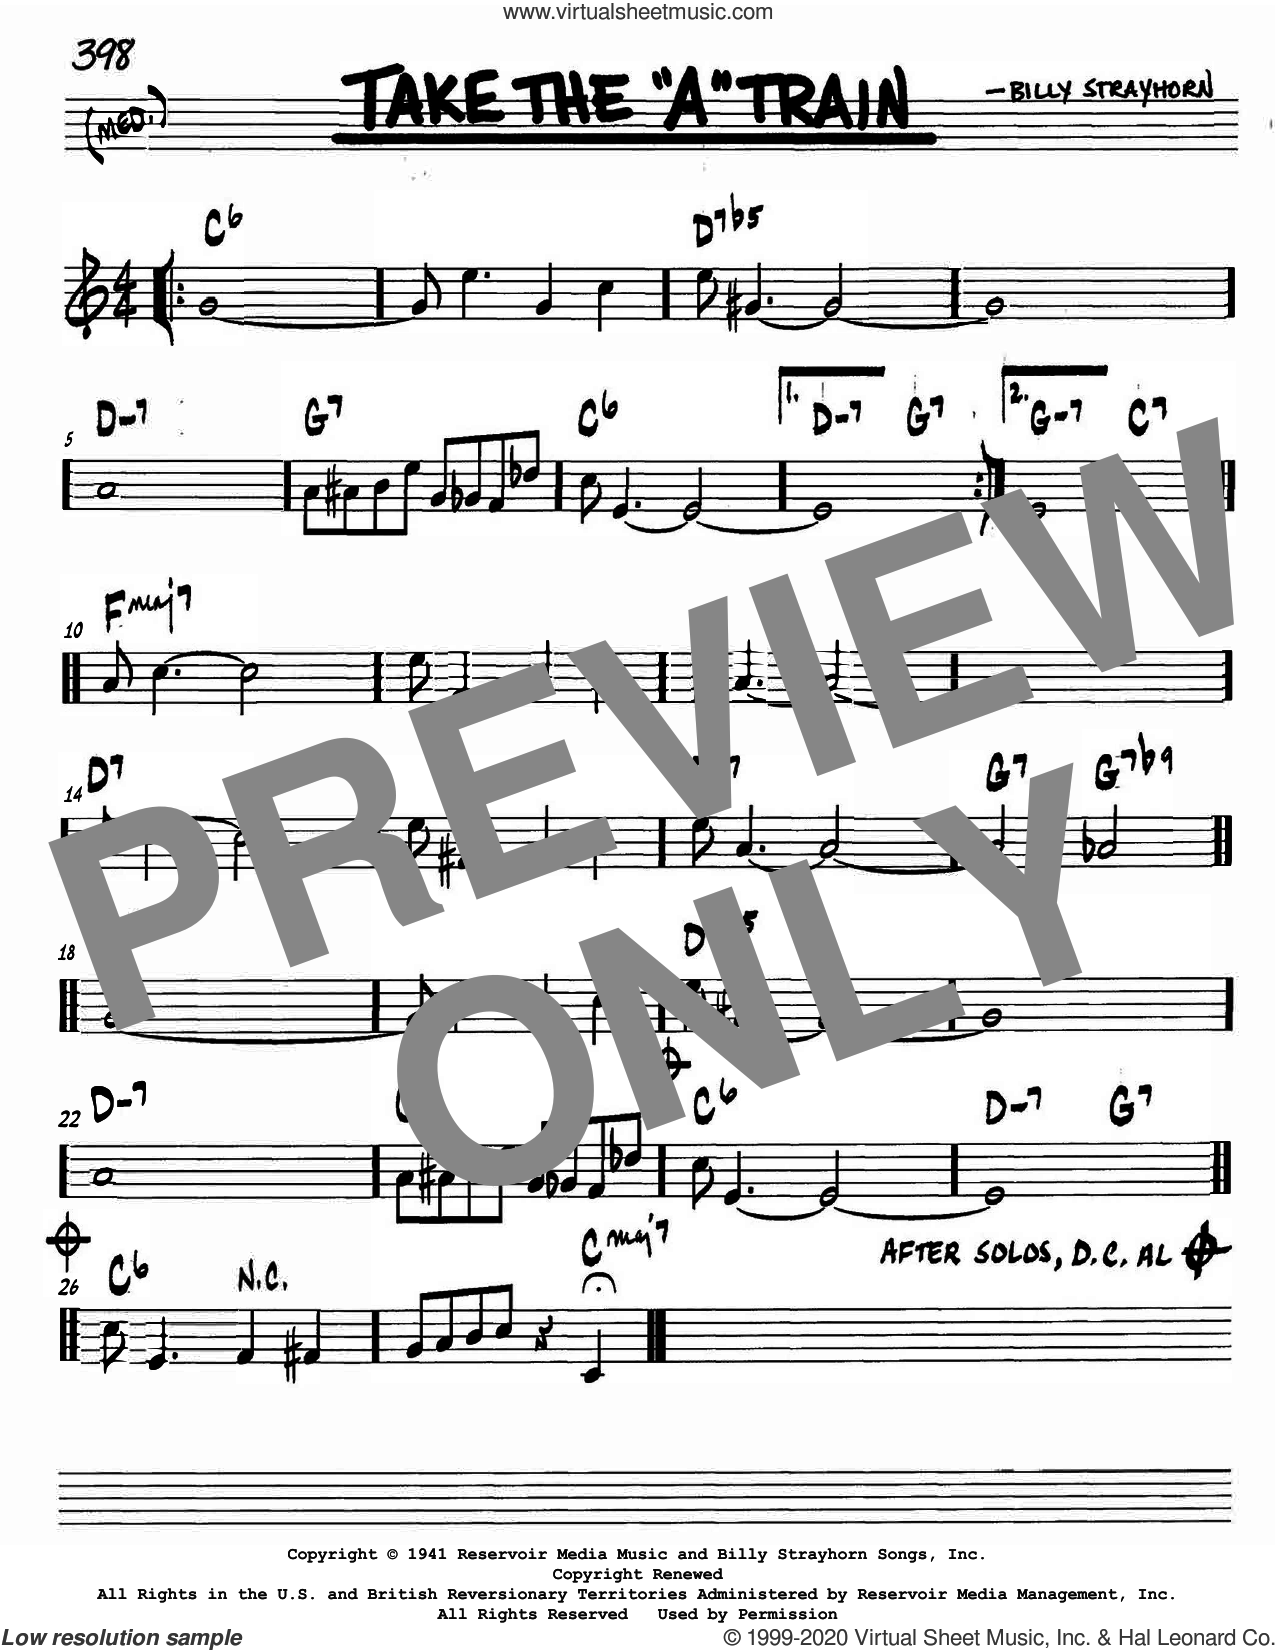 Take The 'A' Train sheet music for voice and other instruments (in C) by Billy Strayhorn, intermediate skill level